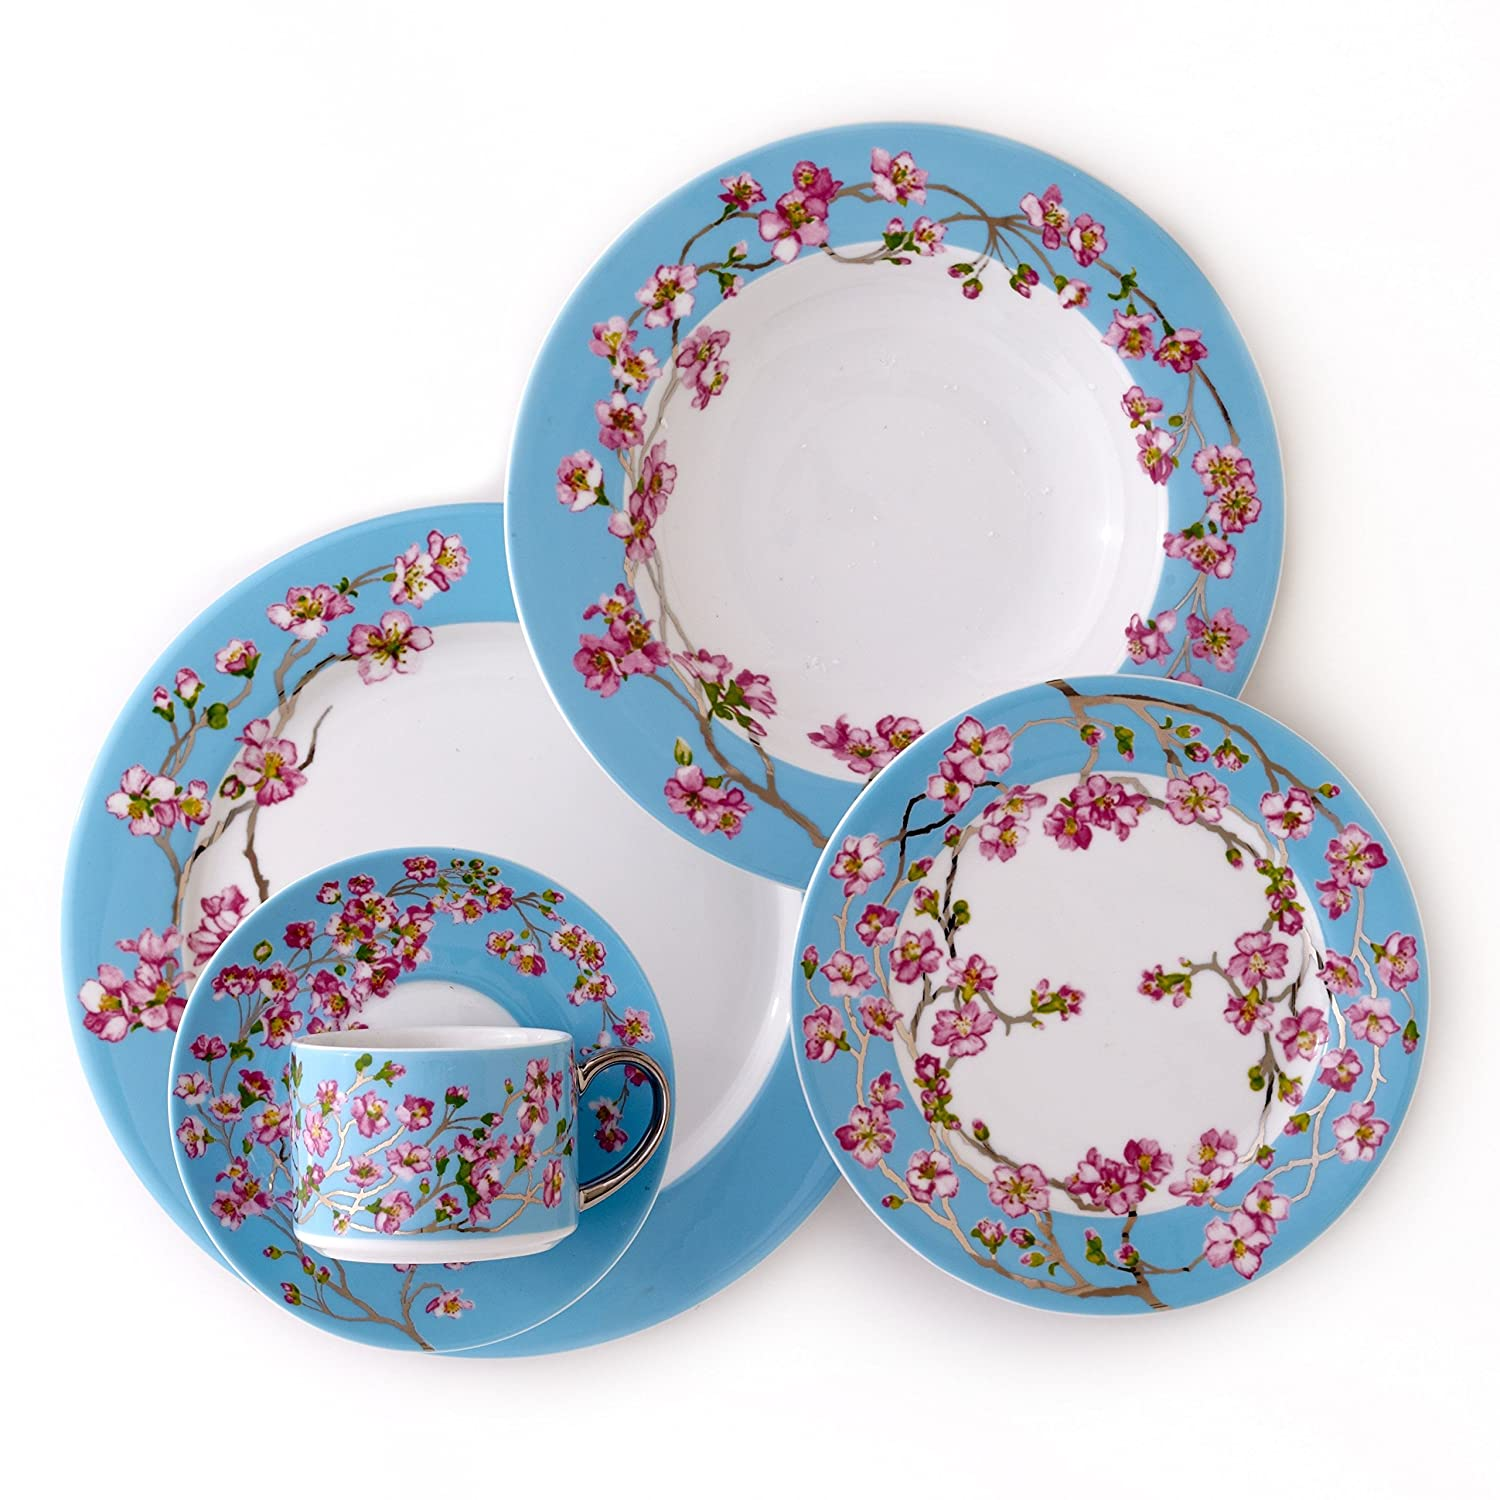 5 Pc Place Setting Dinnerware Set